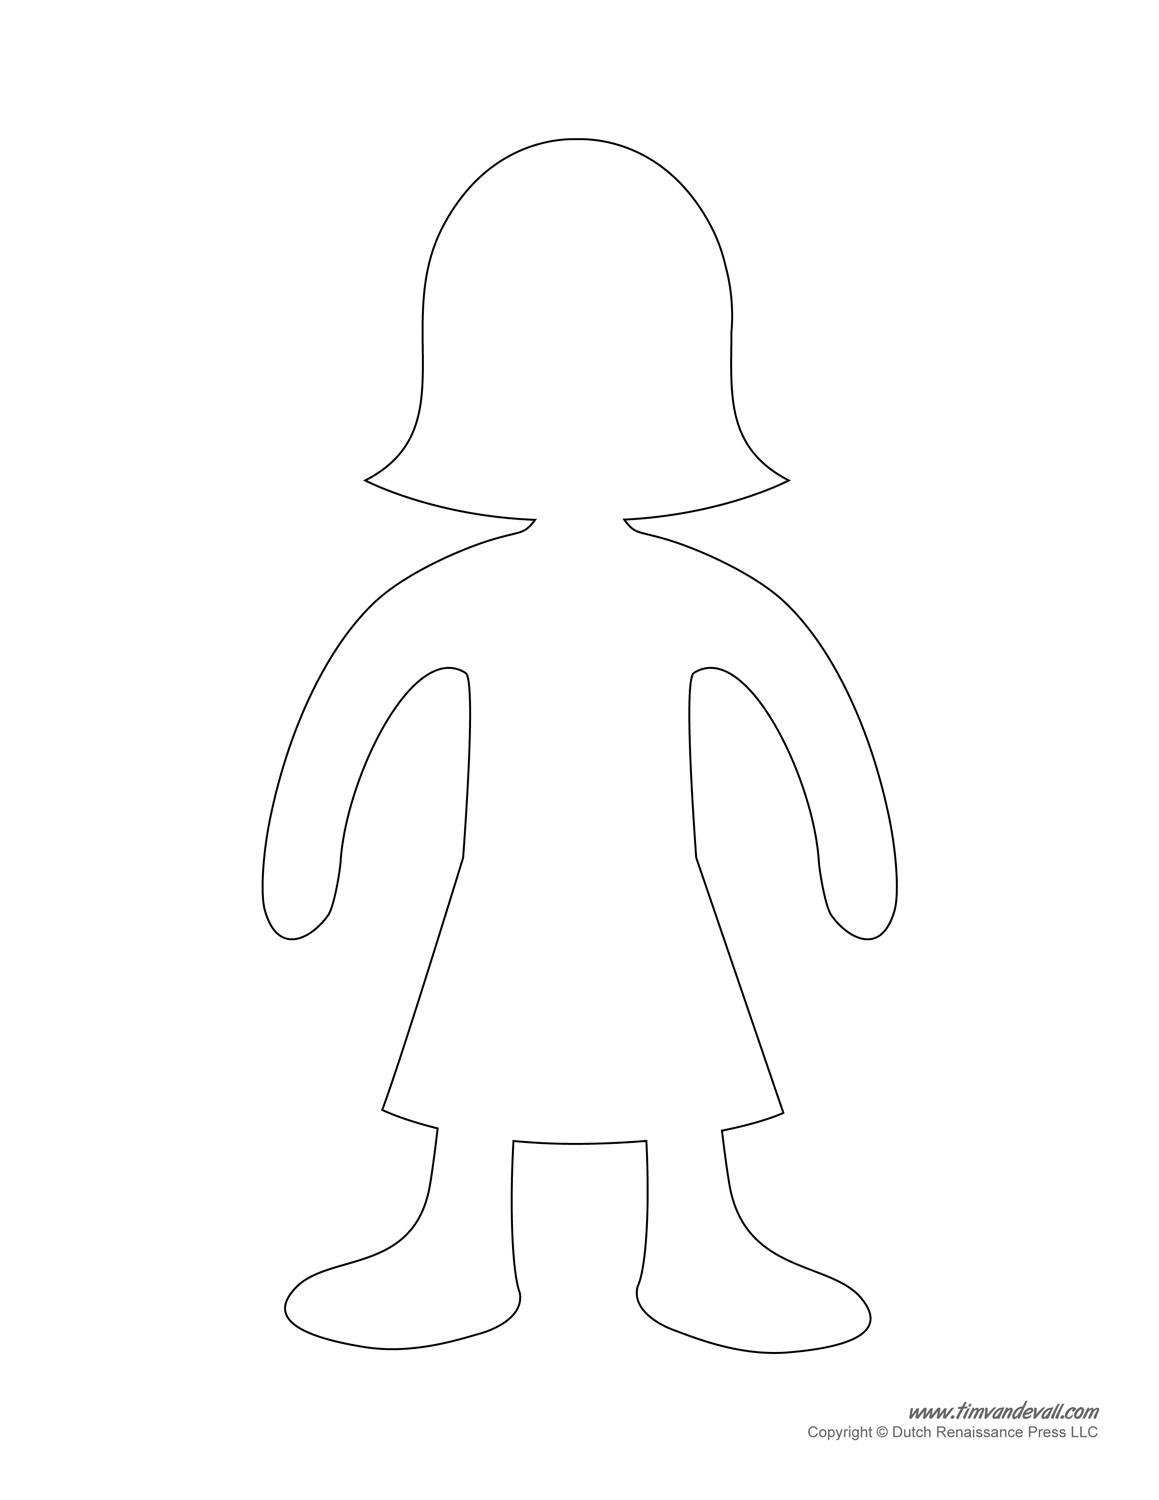 Comprehensive image regarding printable paper doll templates